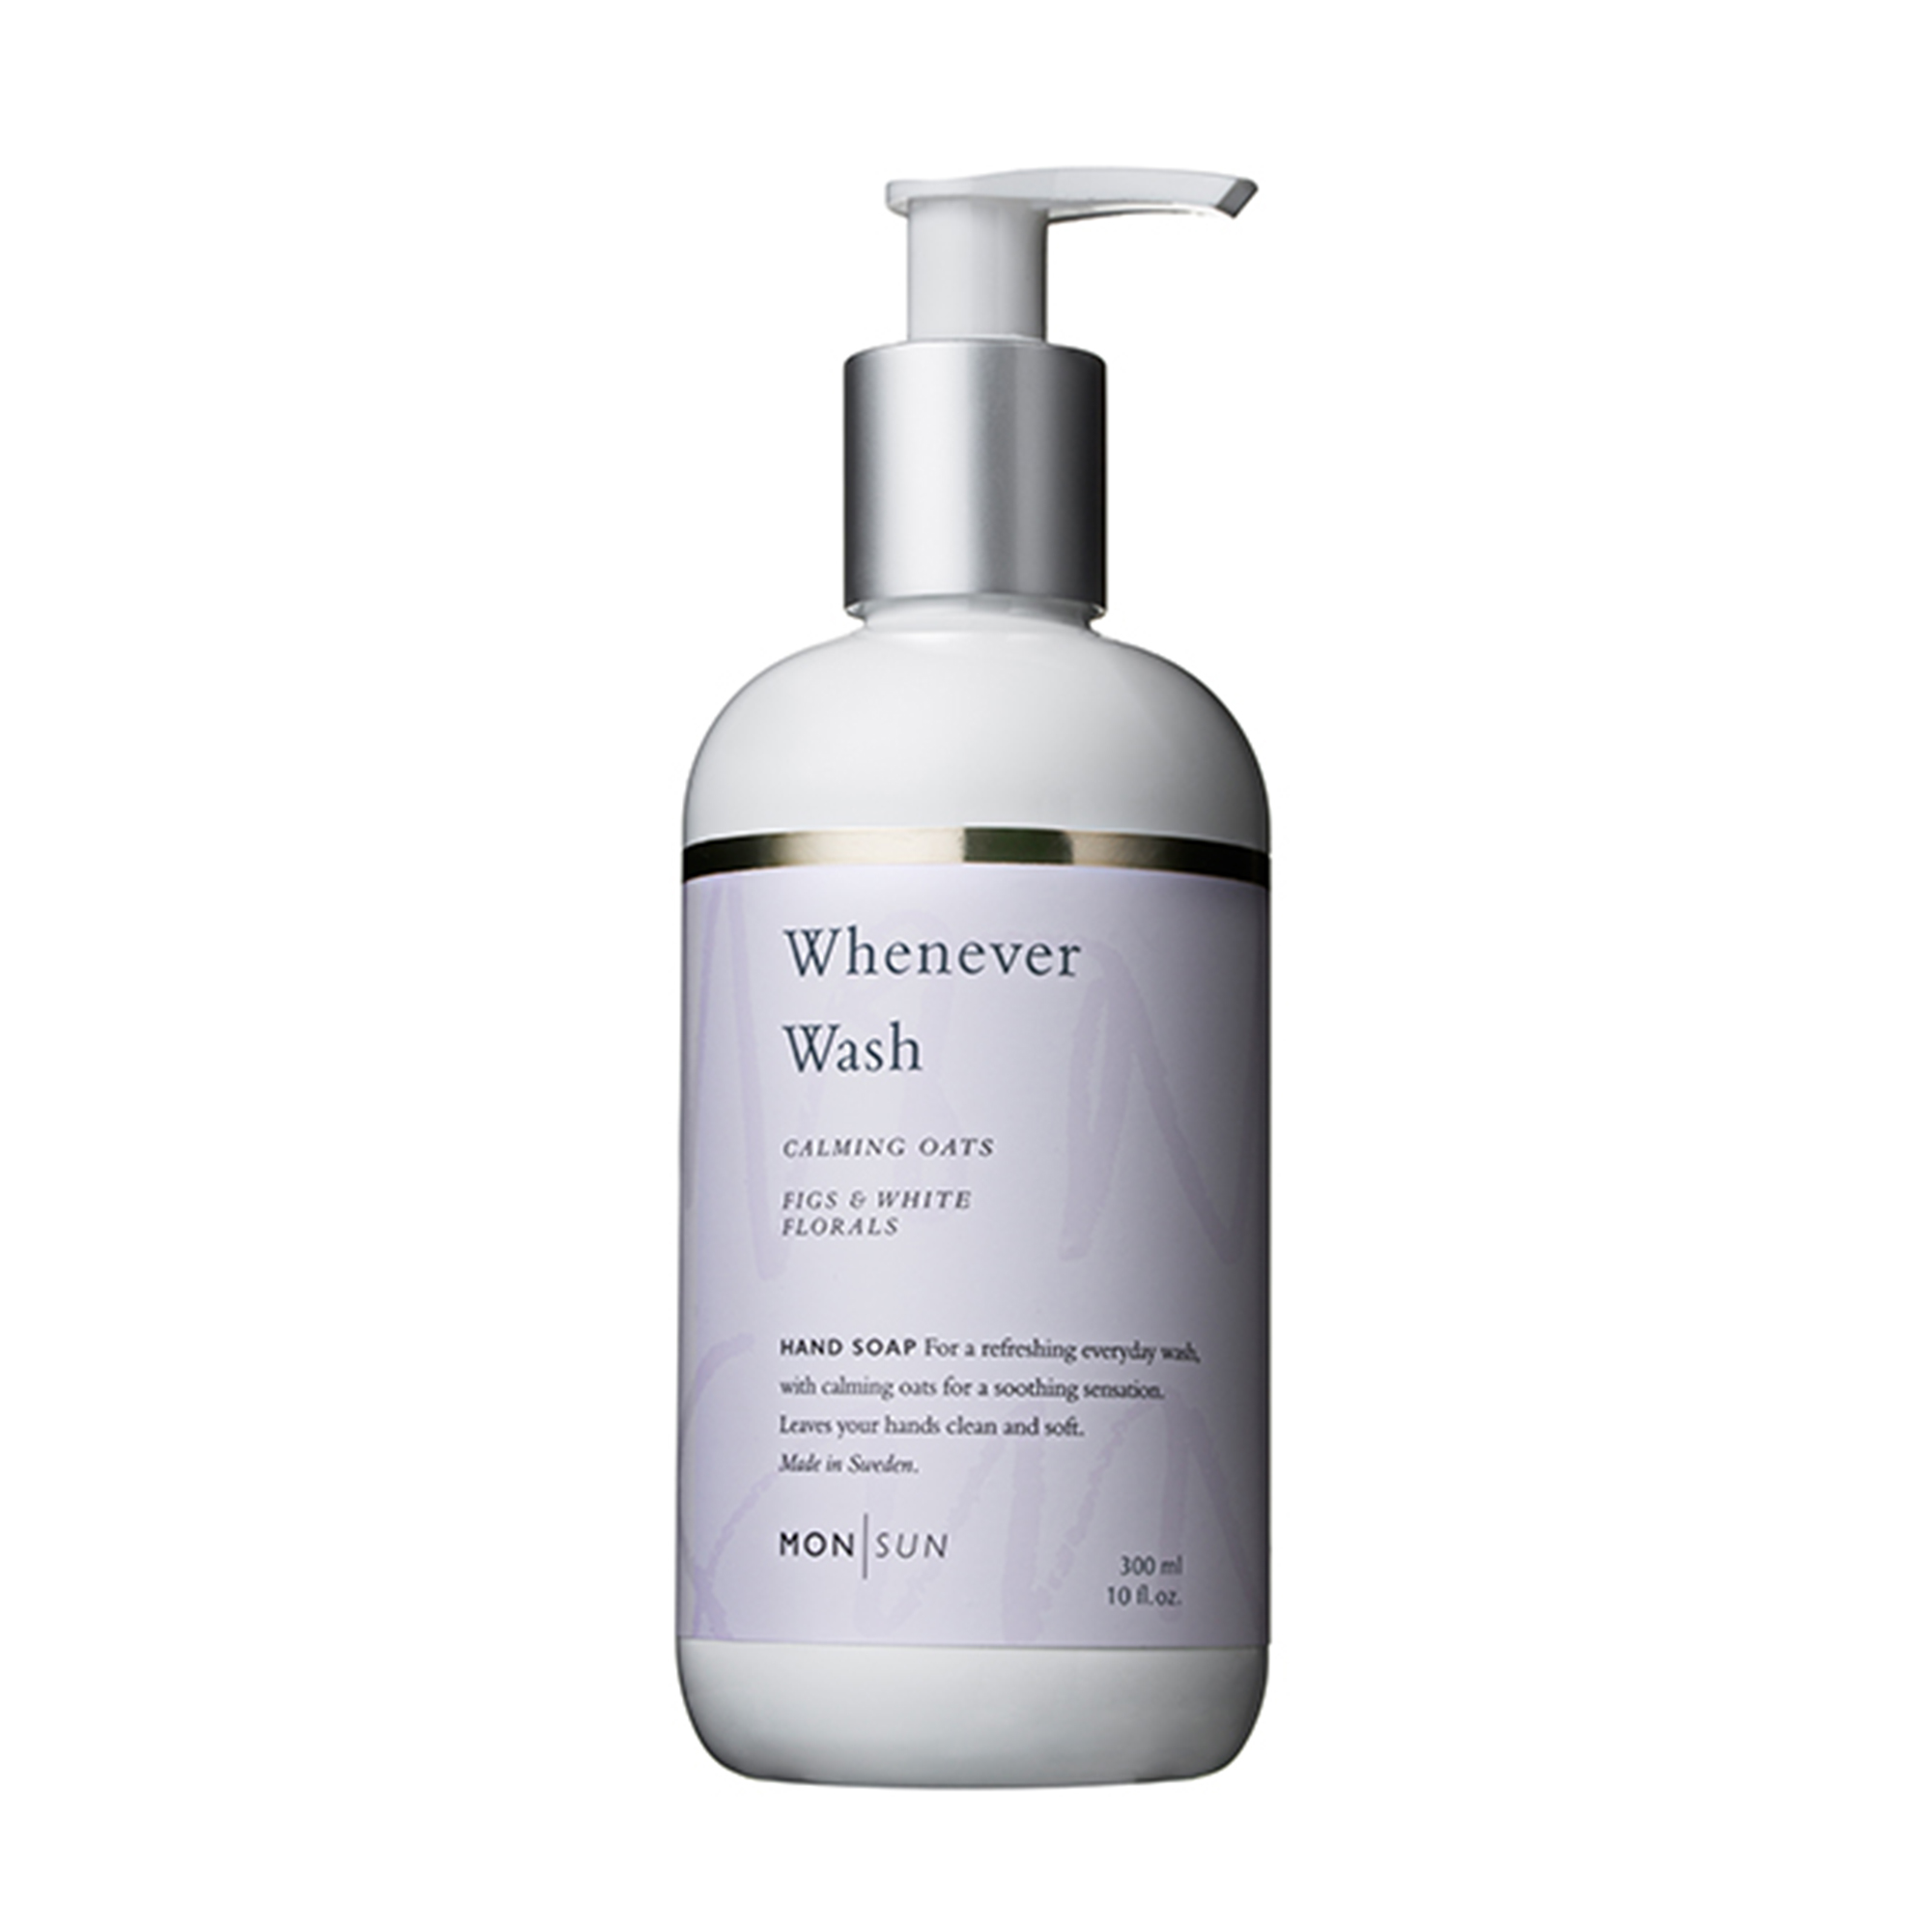 Whenever Wash & Calming Oats Hand Soap 300 ml